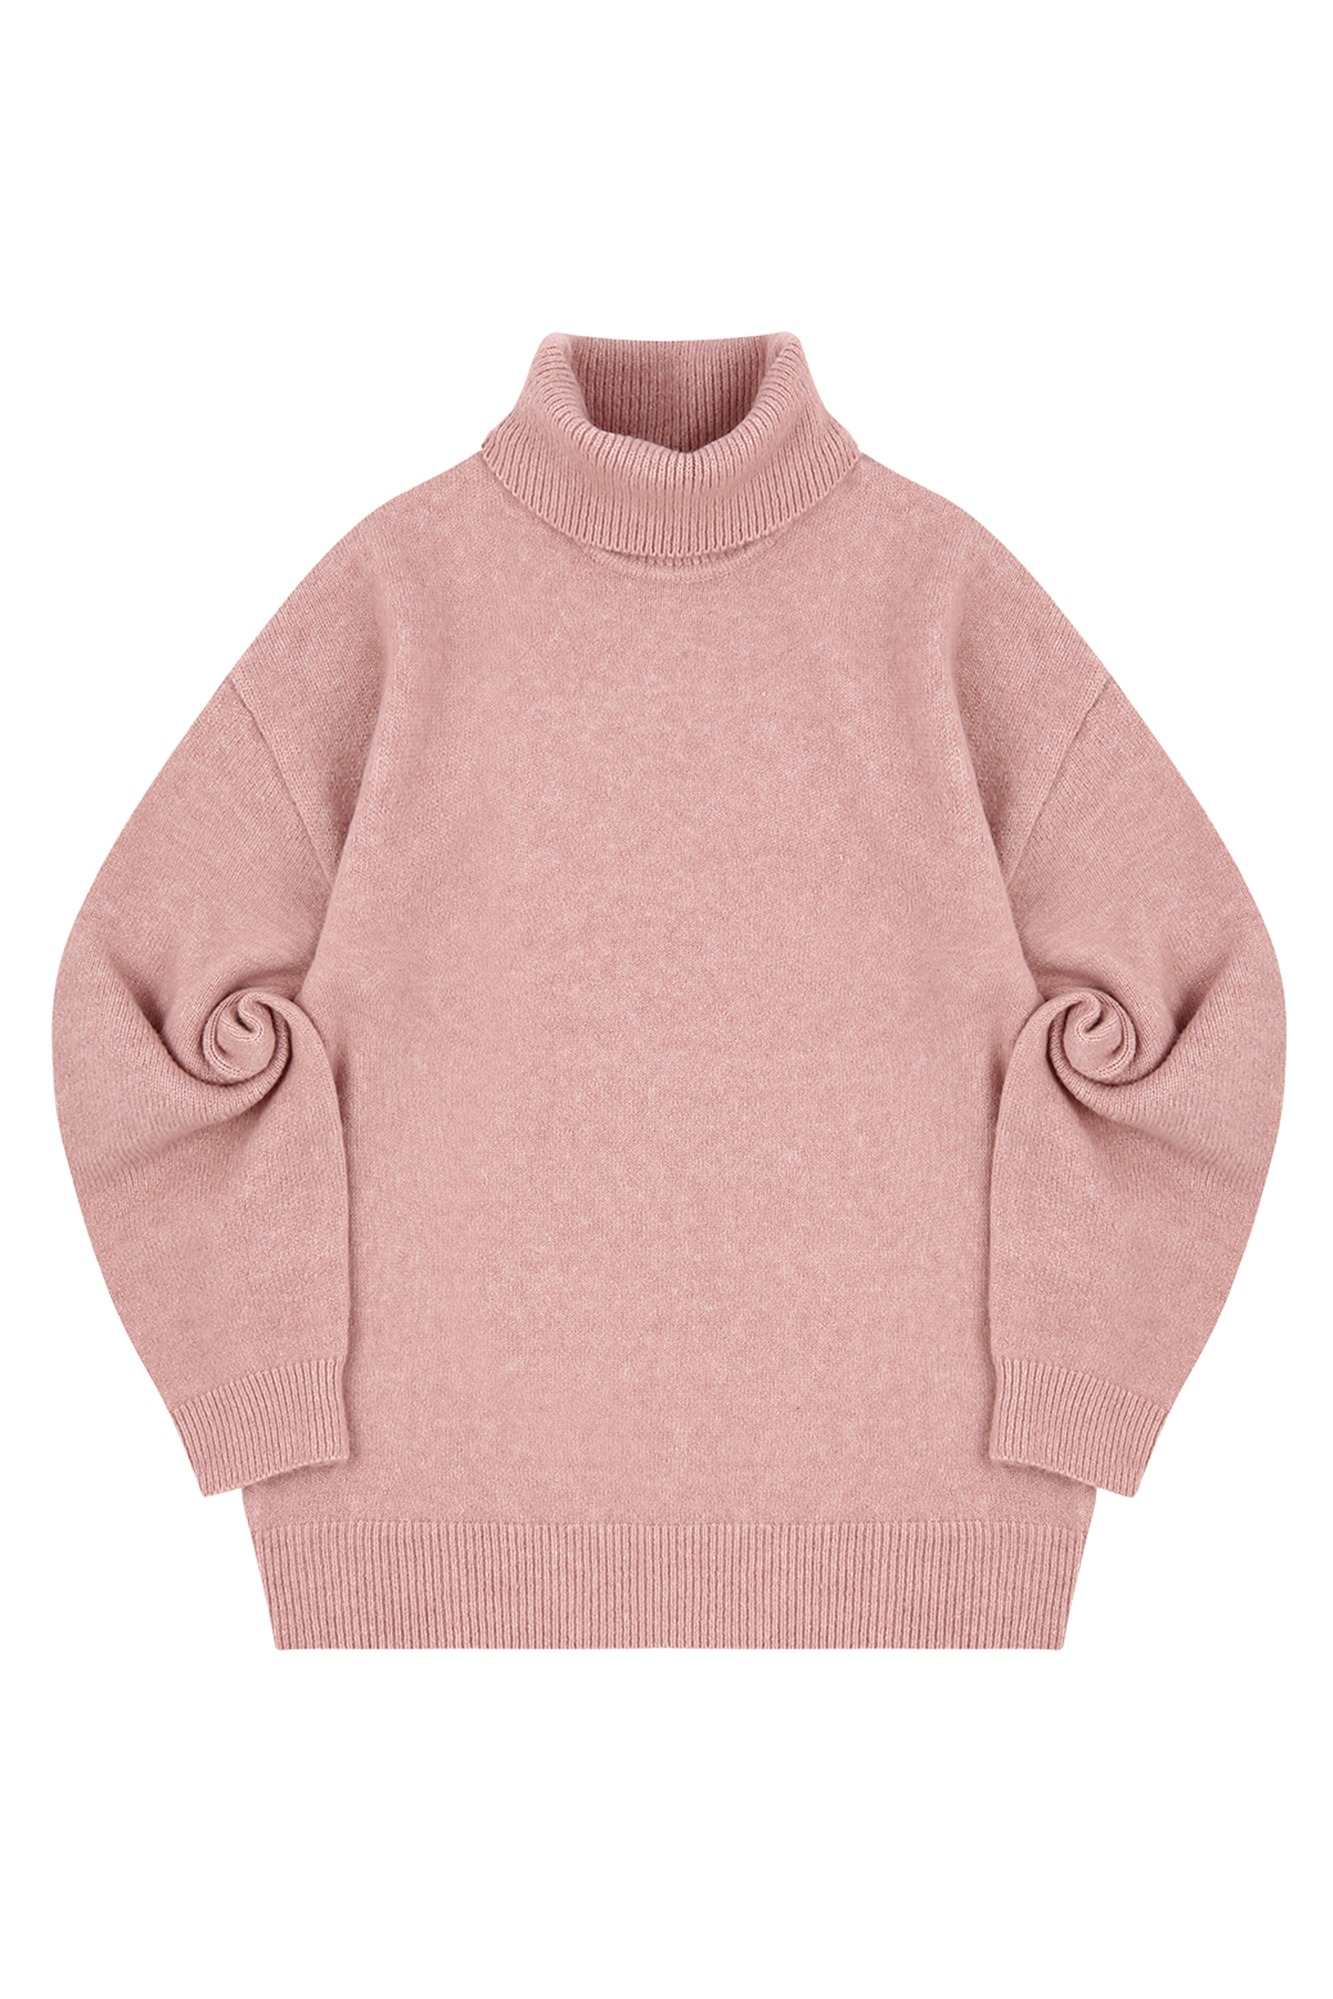 MELANGE TURTLE NECK SWEATER_PINK